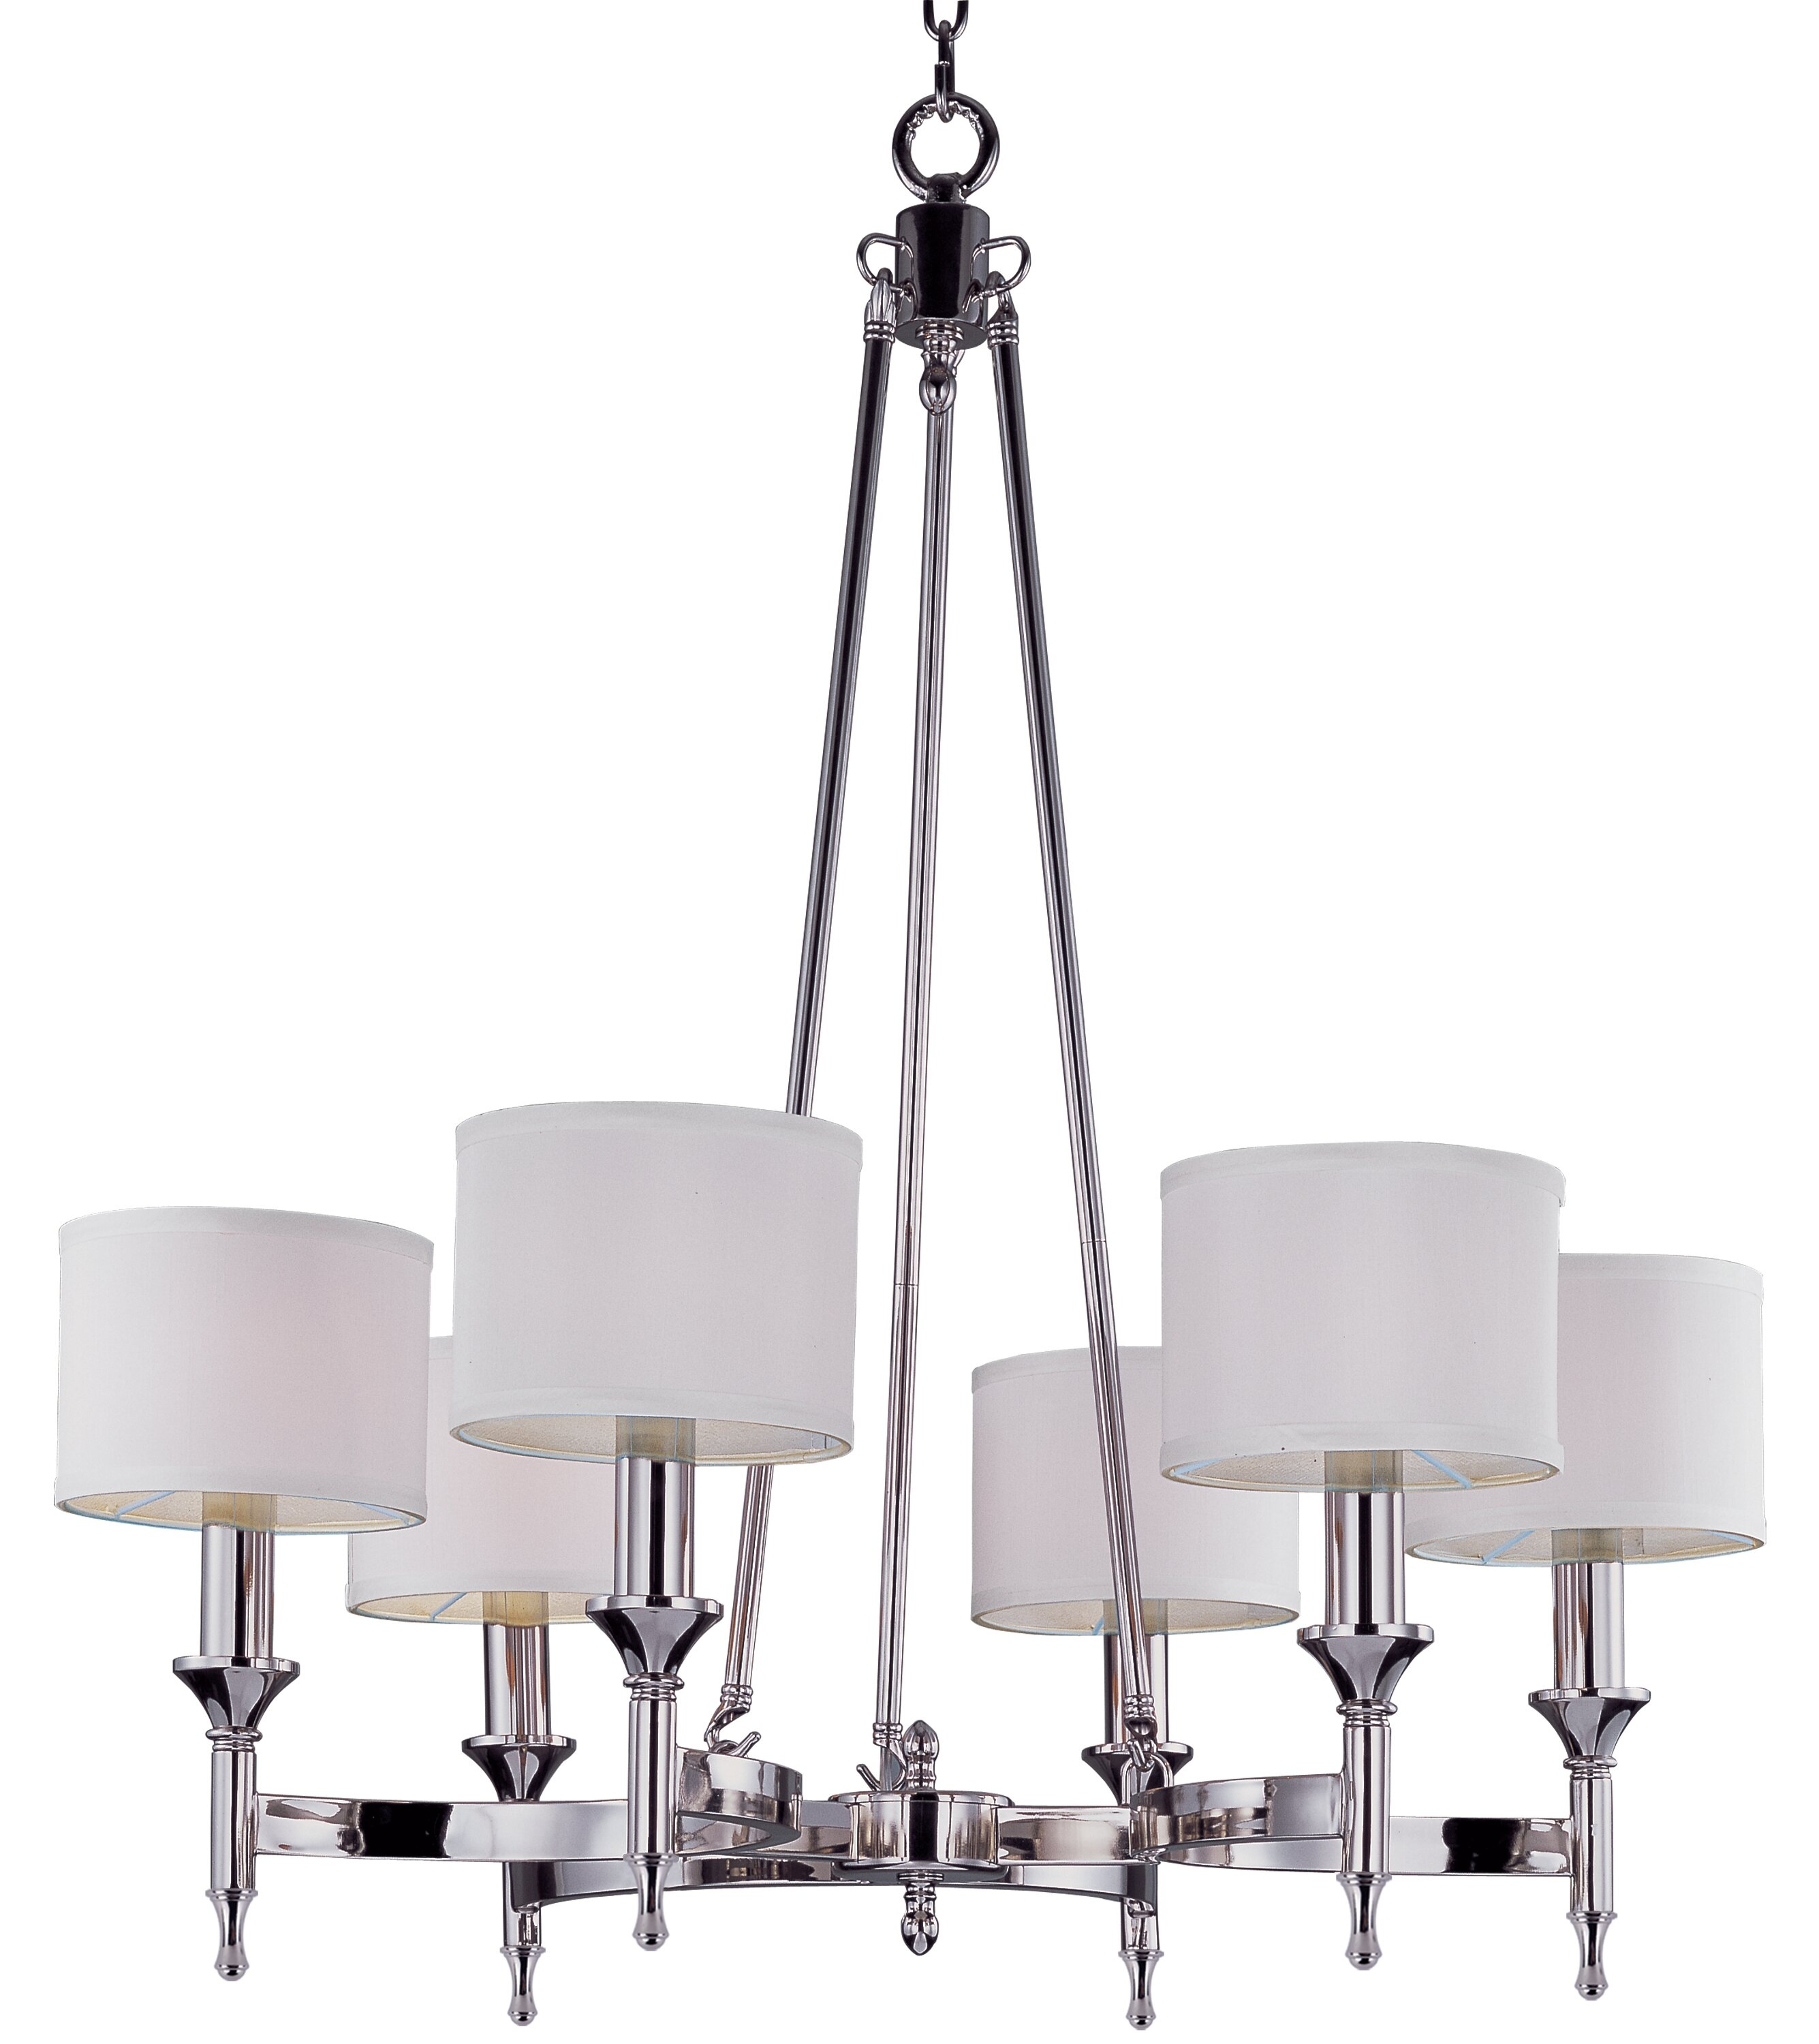 Willa Arlo Interiors Devona 6 Light Metal Drum Chandelier